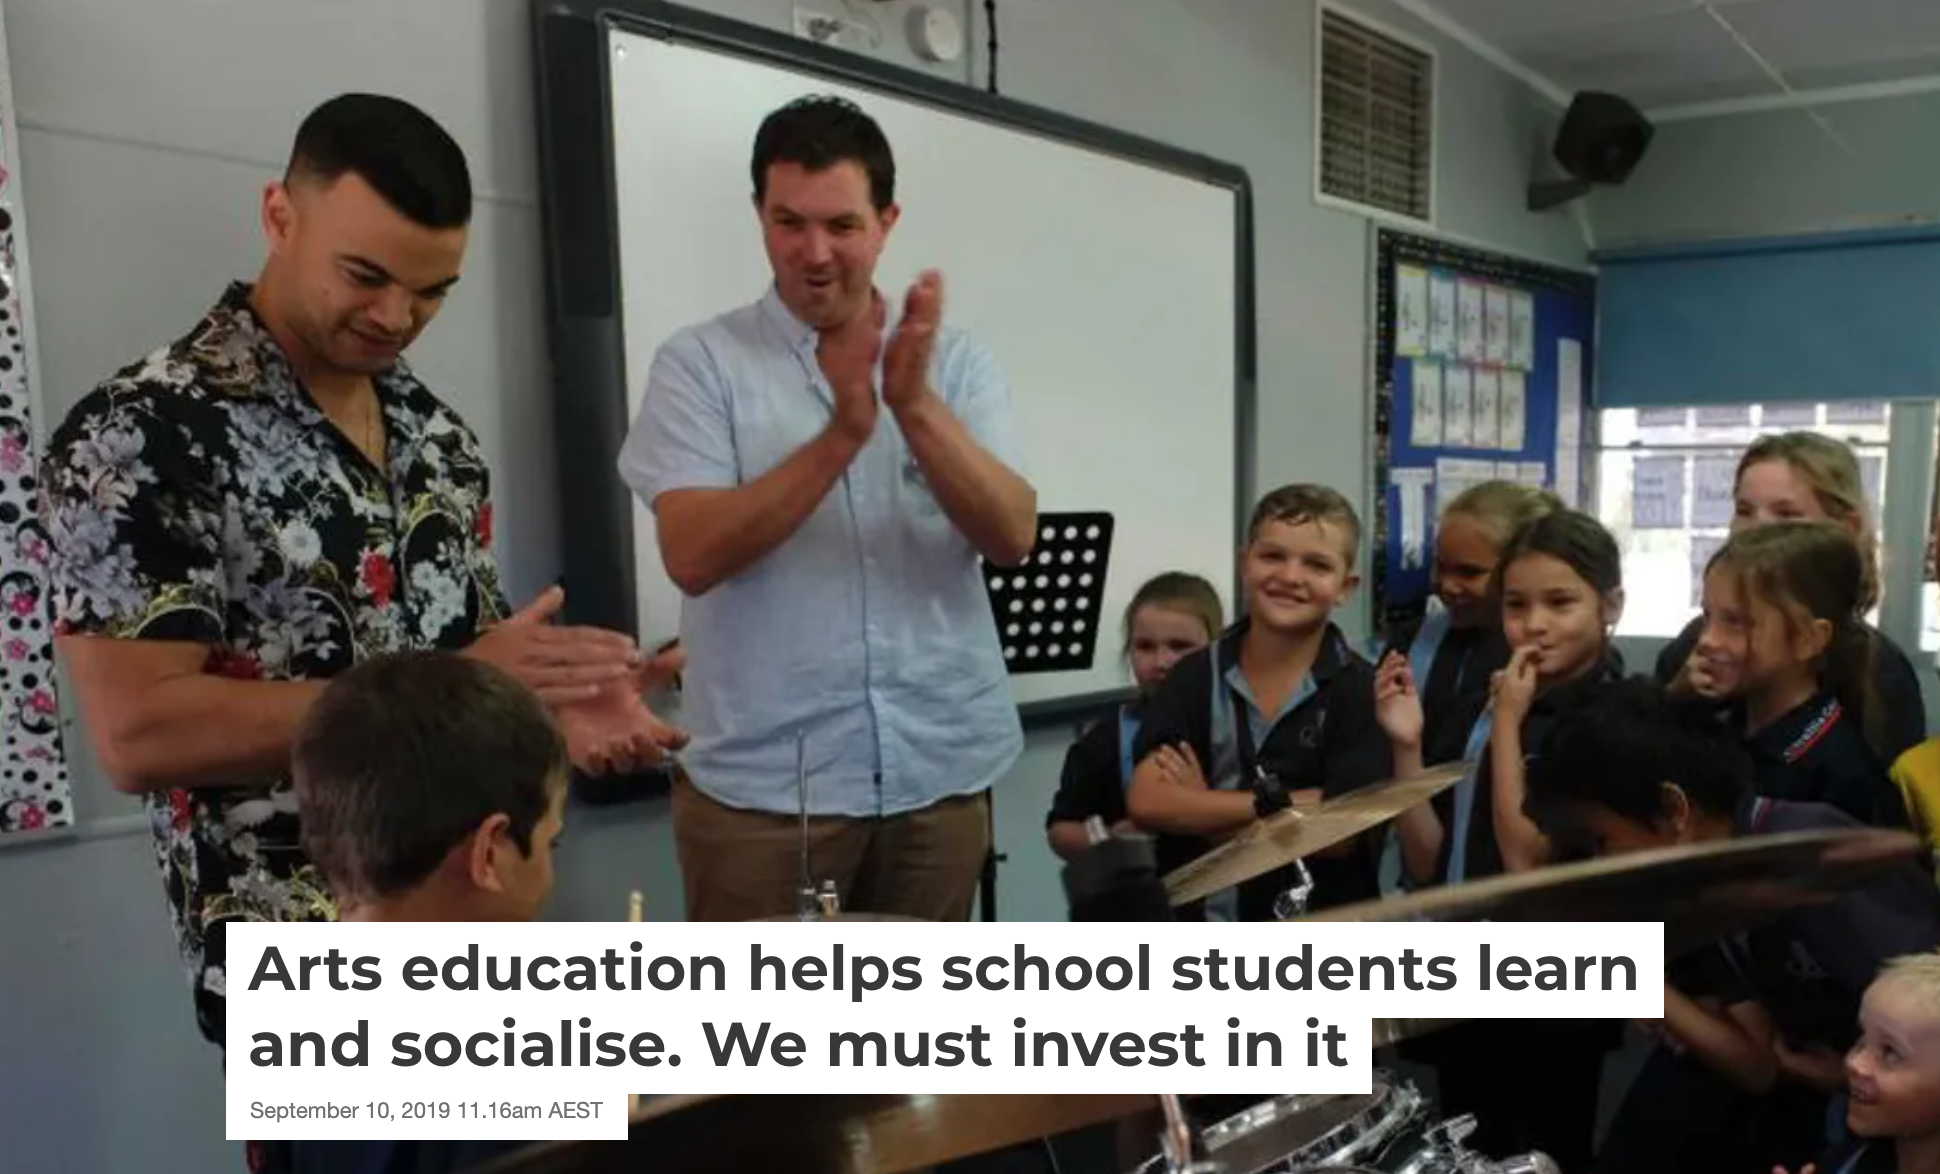 Arts education helps school students learn and socialise. We must invest in it!